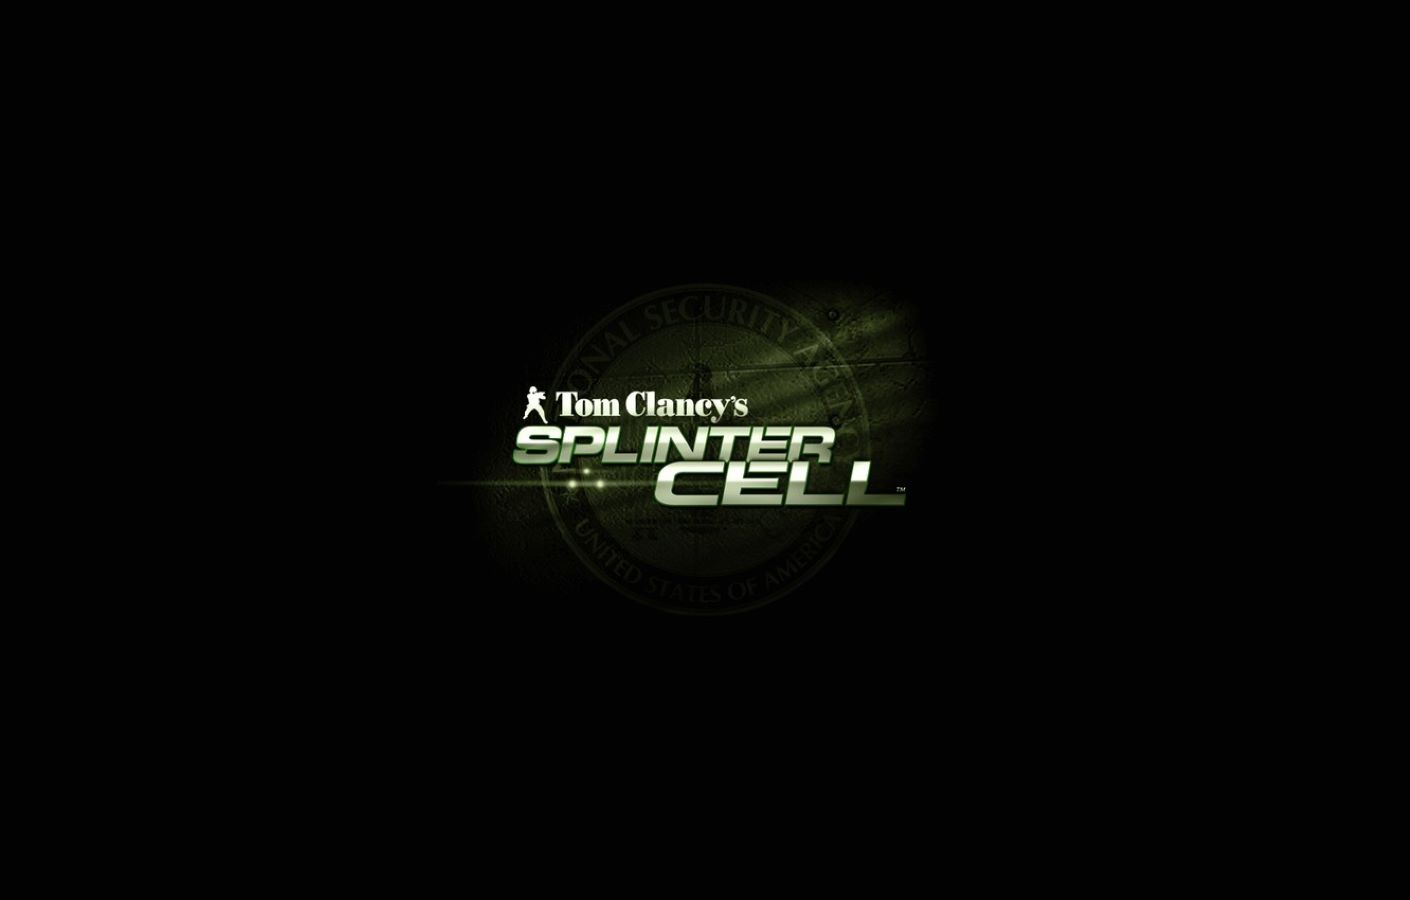 New Splinter Cell Mainline Game In Production Title Image